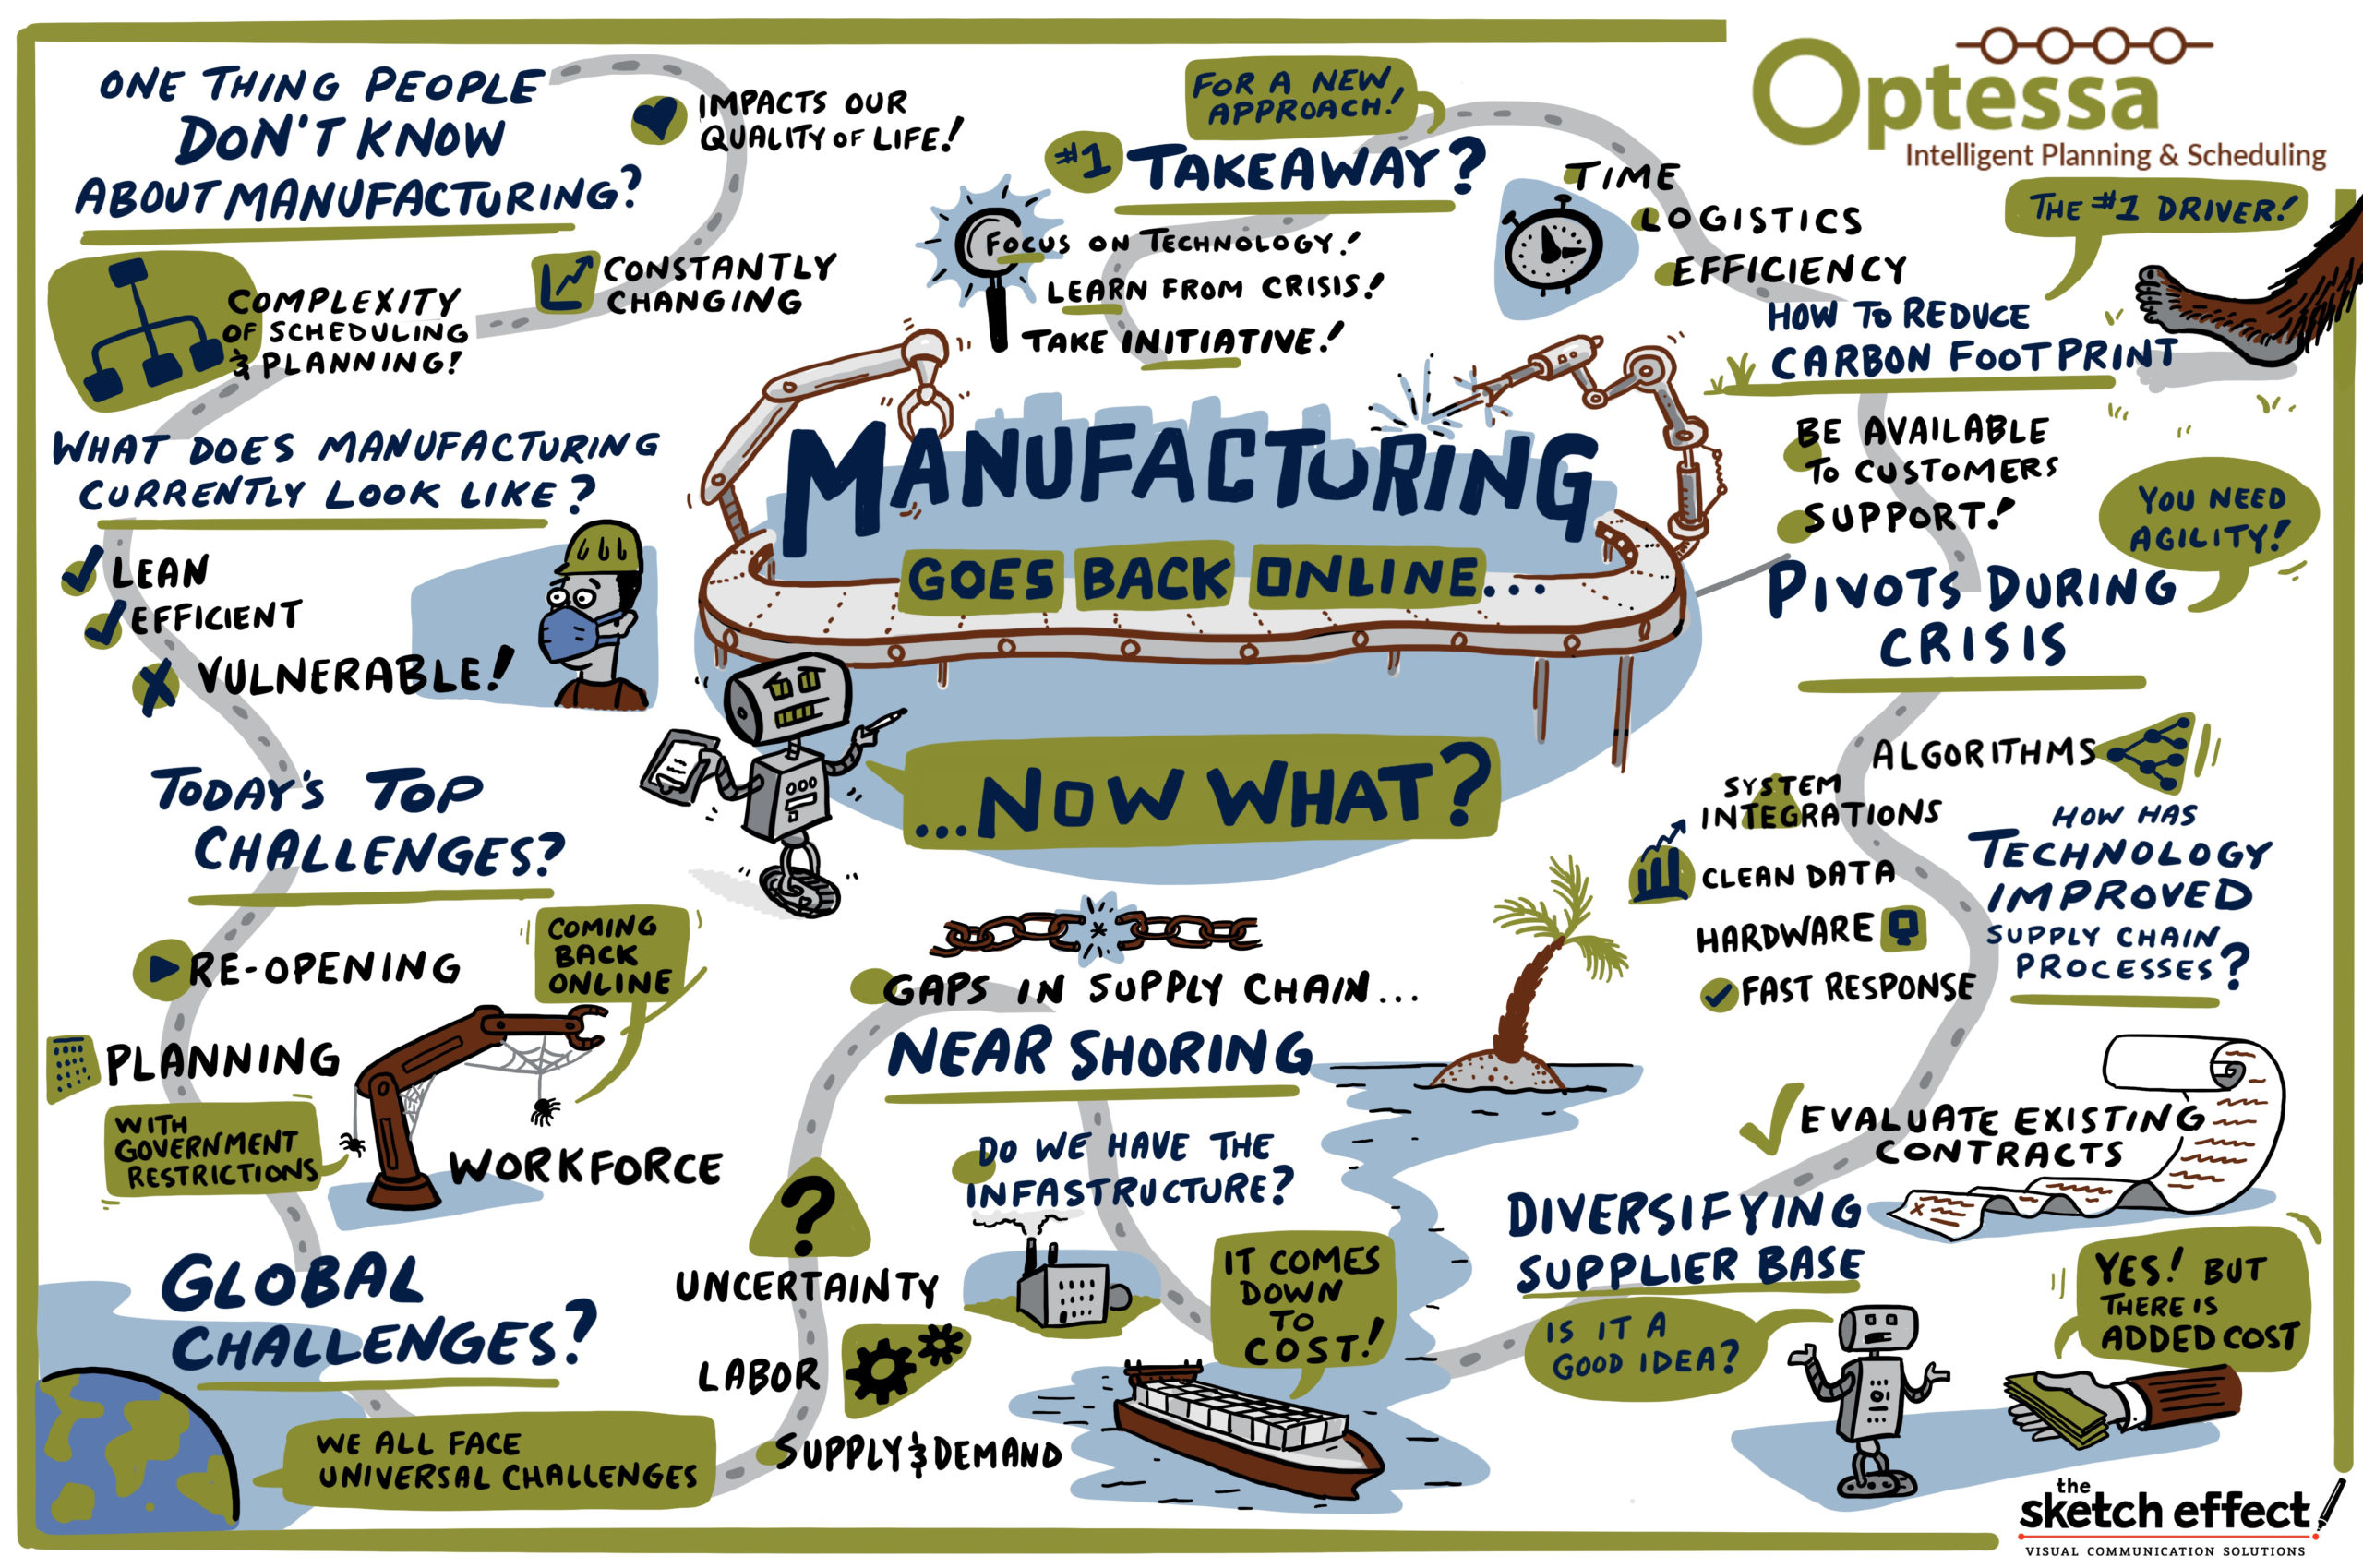 SKETCH - Panel Discussion - Manufacturing Goes Back Online Event